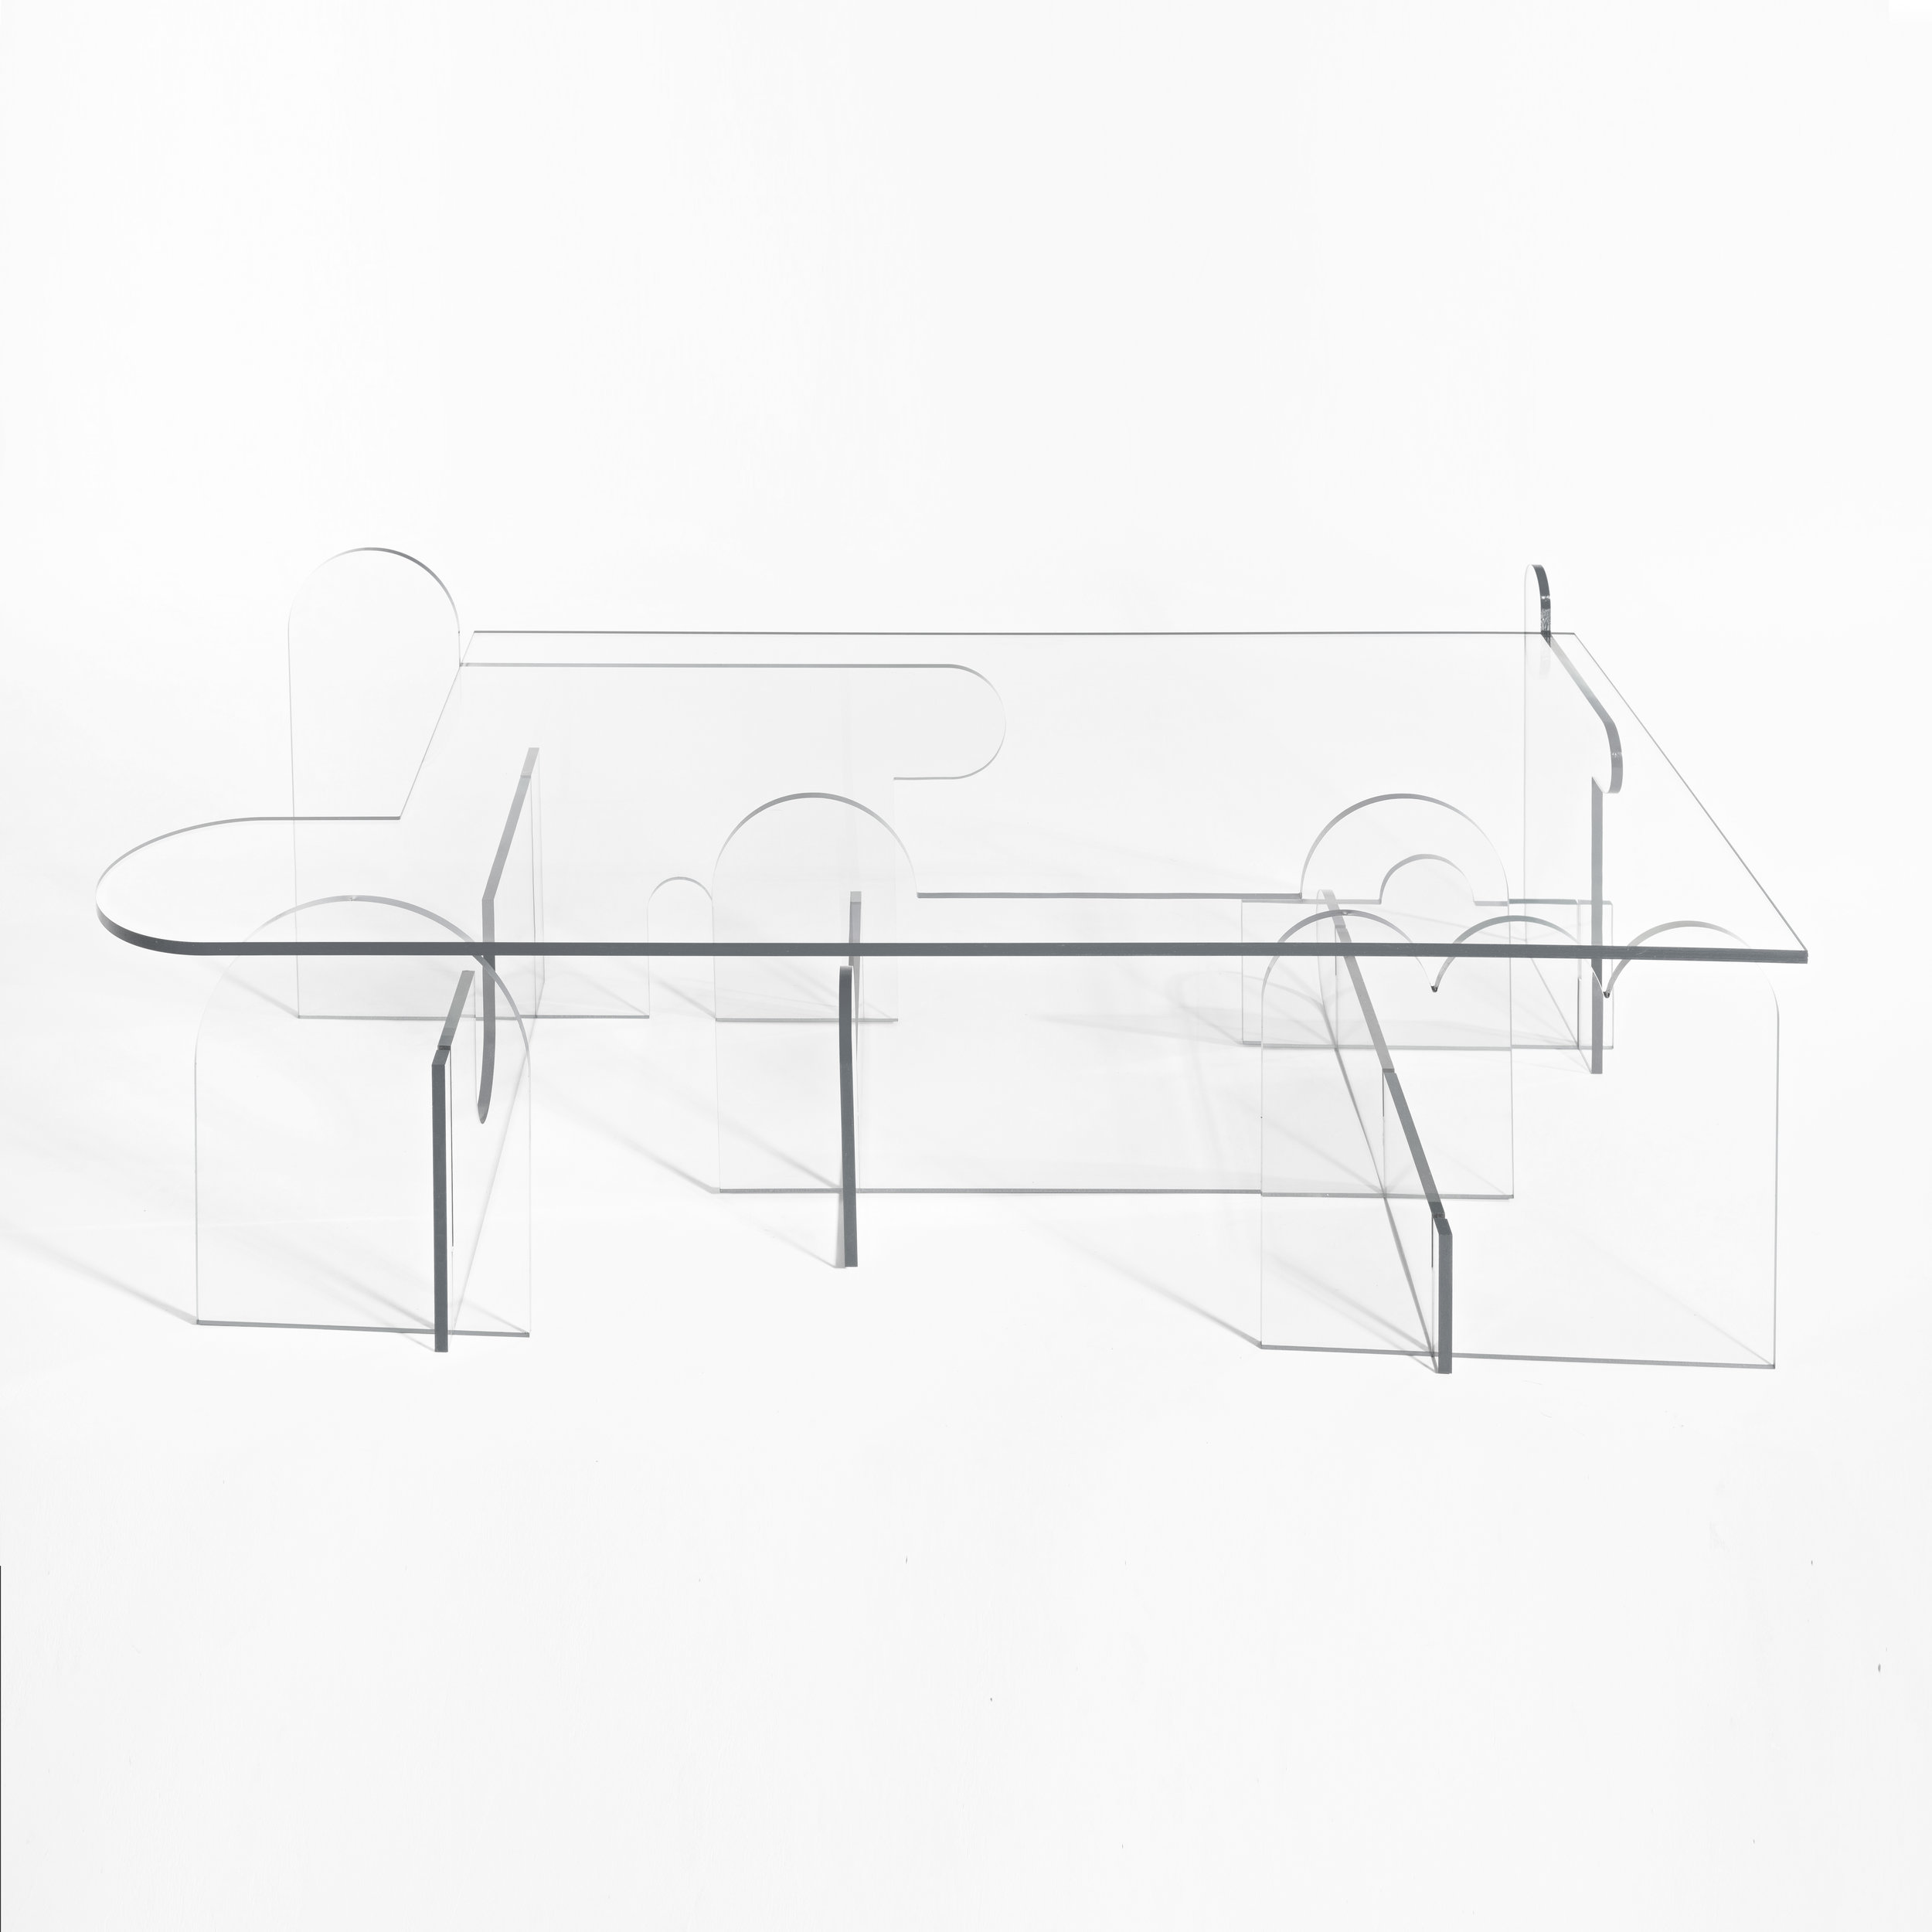 EO_Perspective_Table_04_square_high.jpg